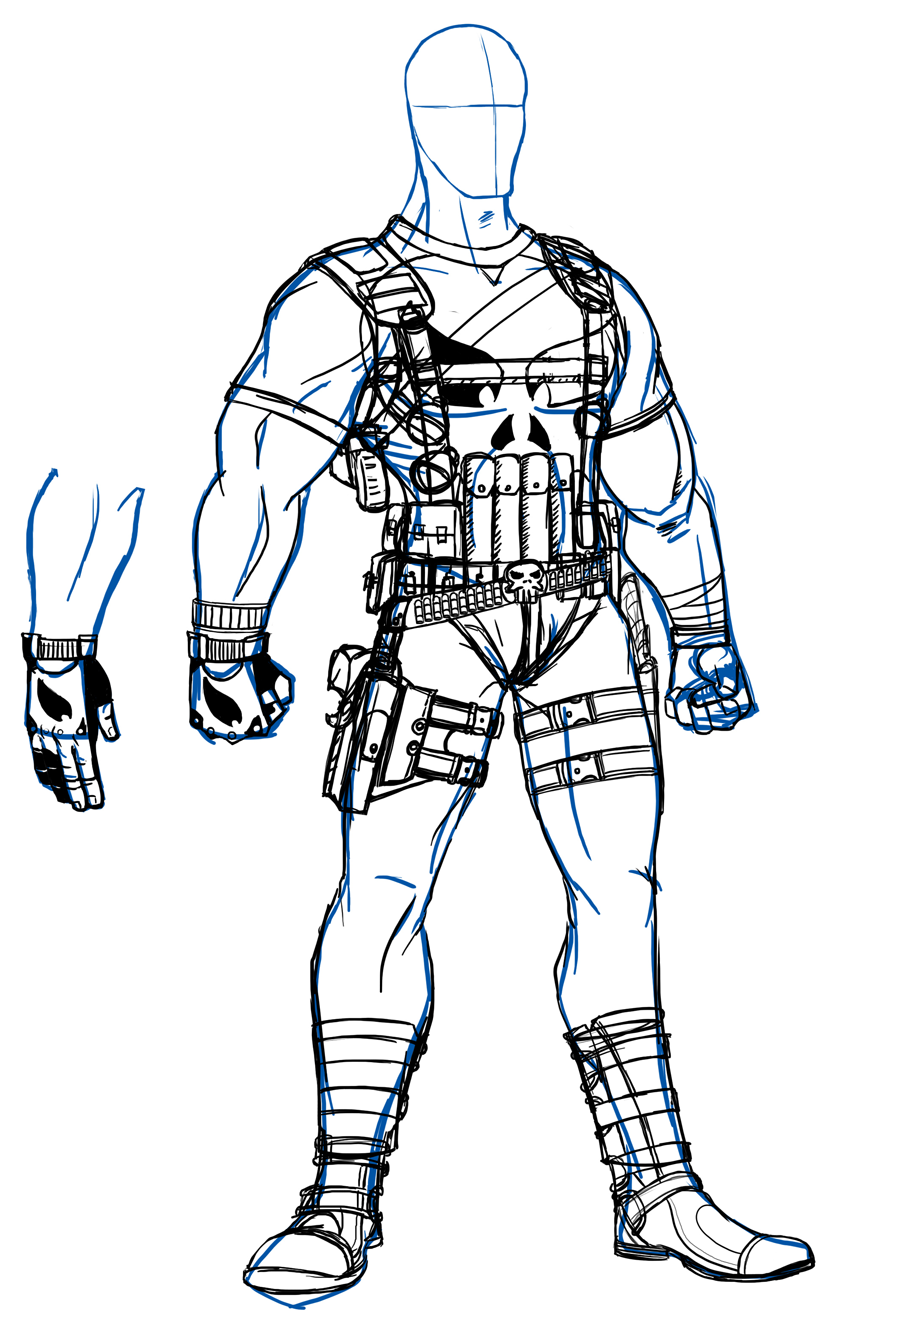 Punisher - Concept